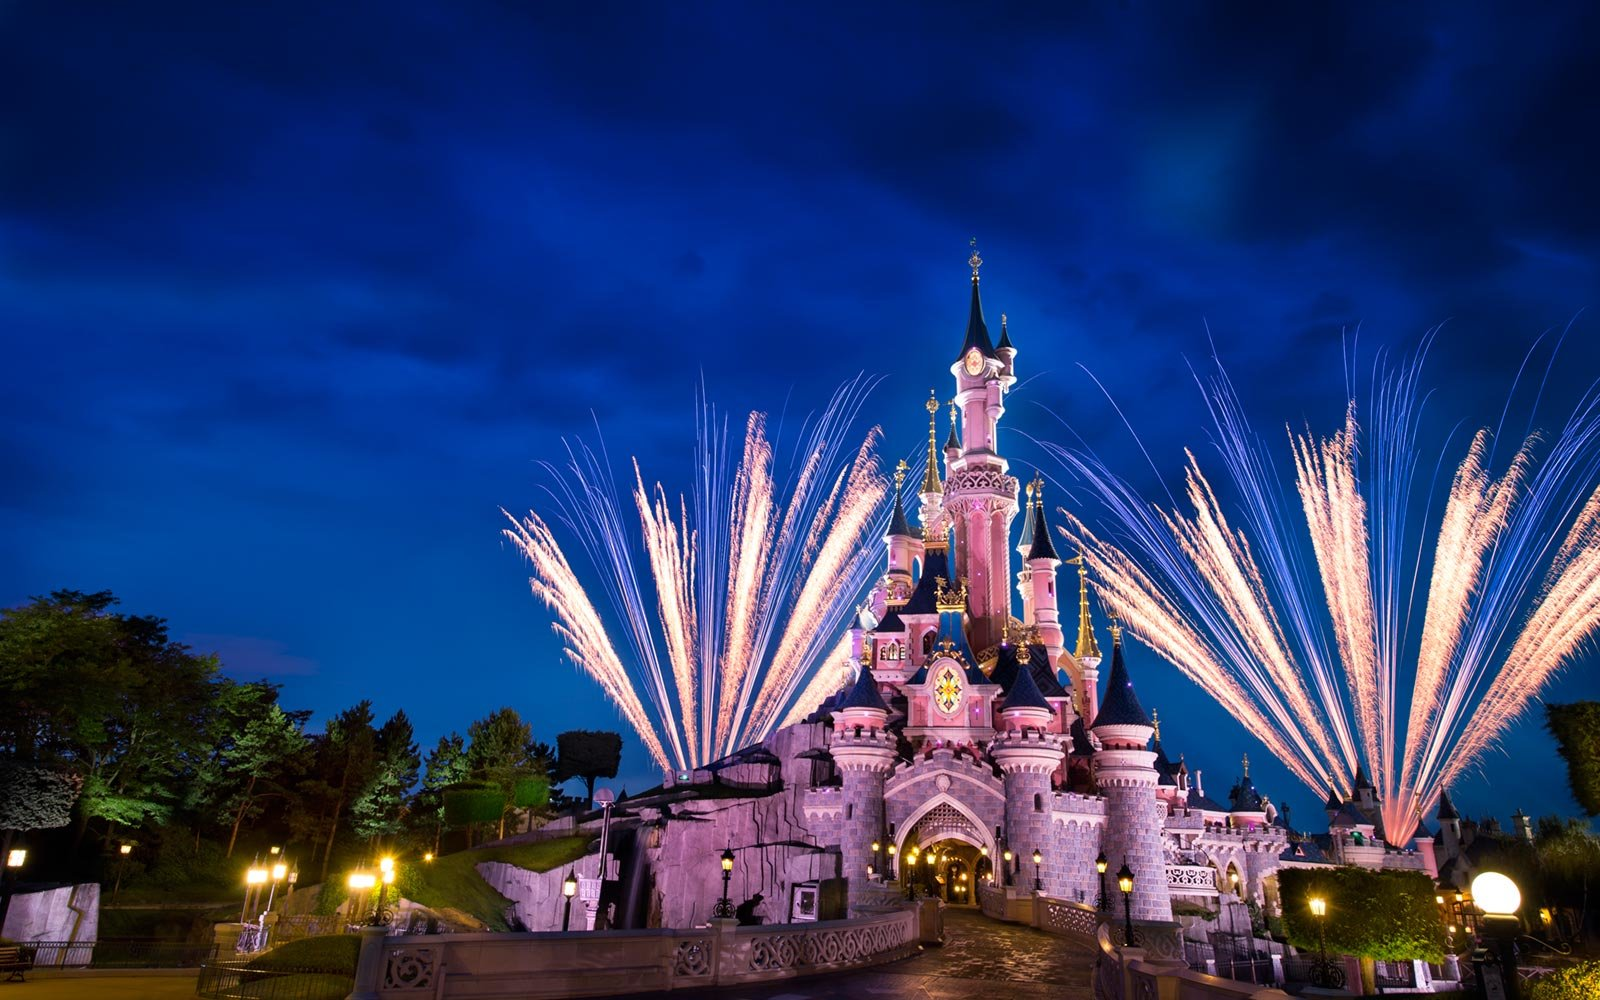 Fireworks, Disneyland Paris, France